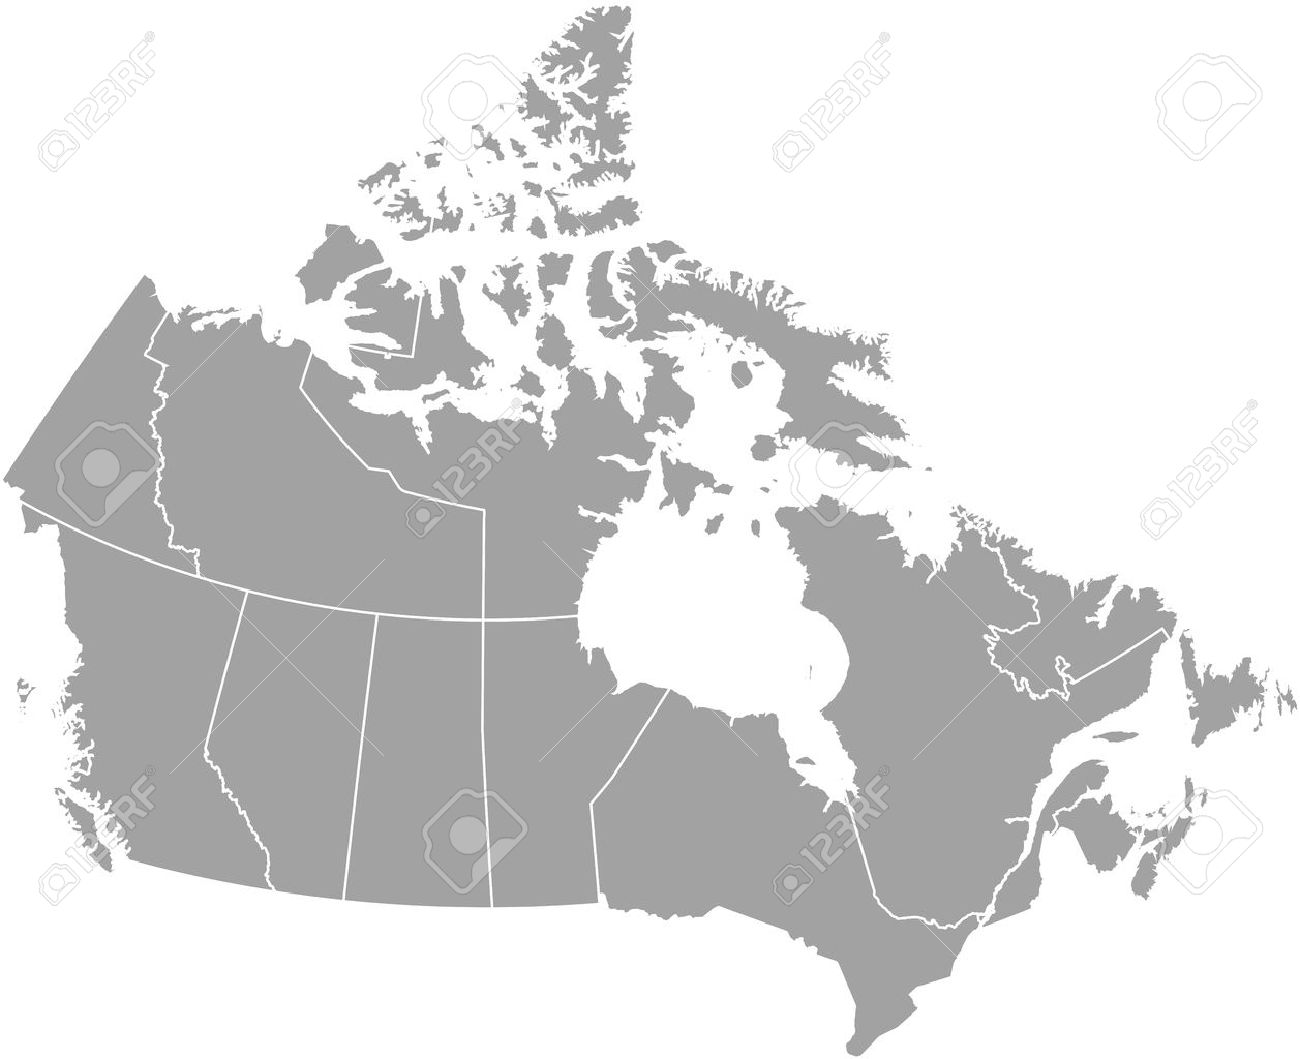 Canada map outline with borders of provinces or states - 50920420